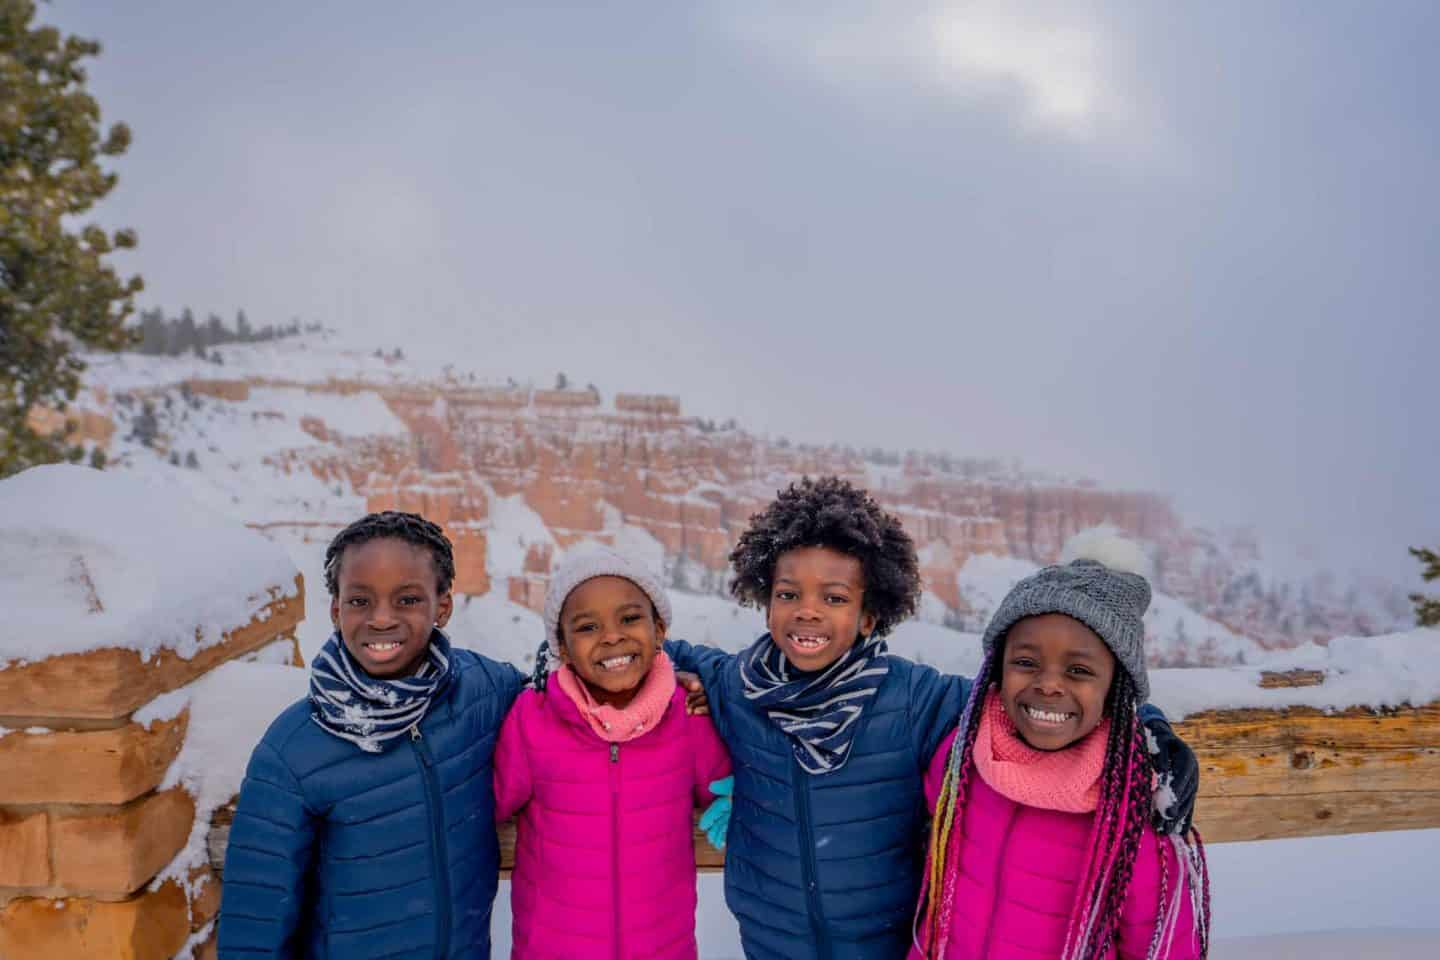 Four kids standing in front of a great snowy view.